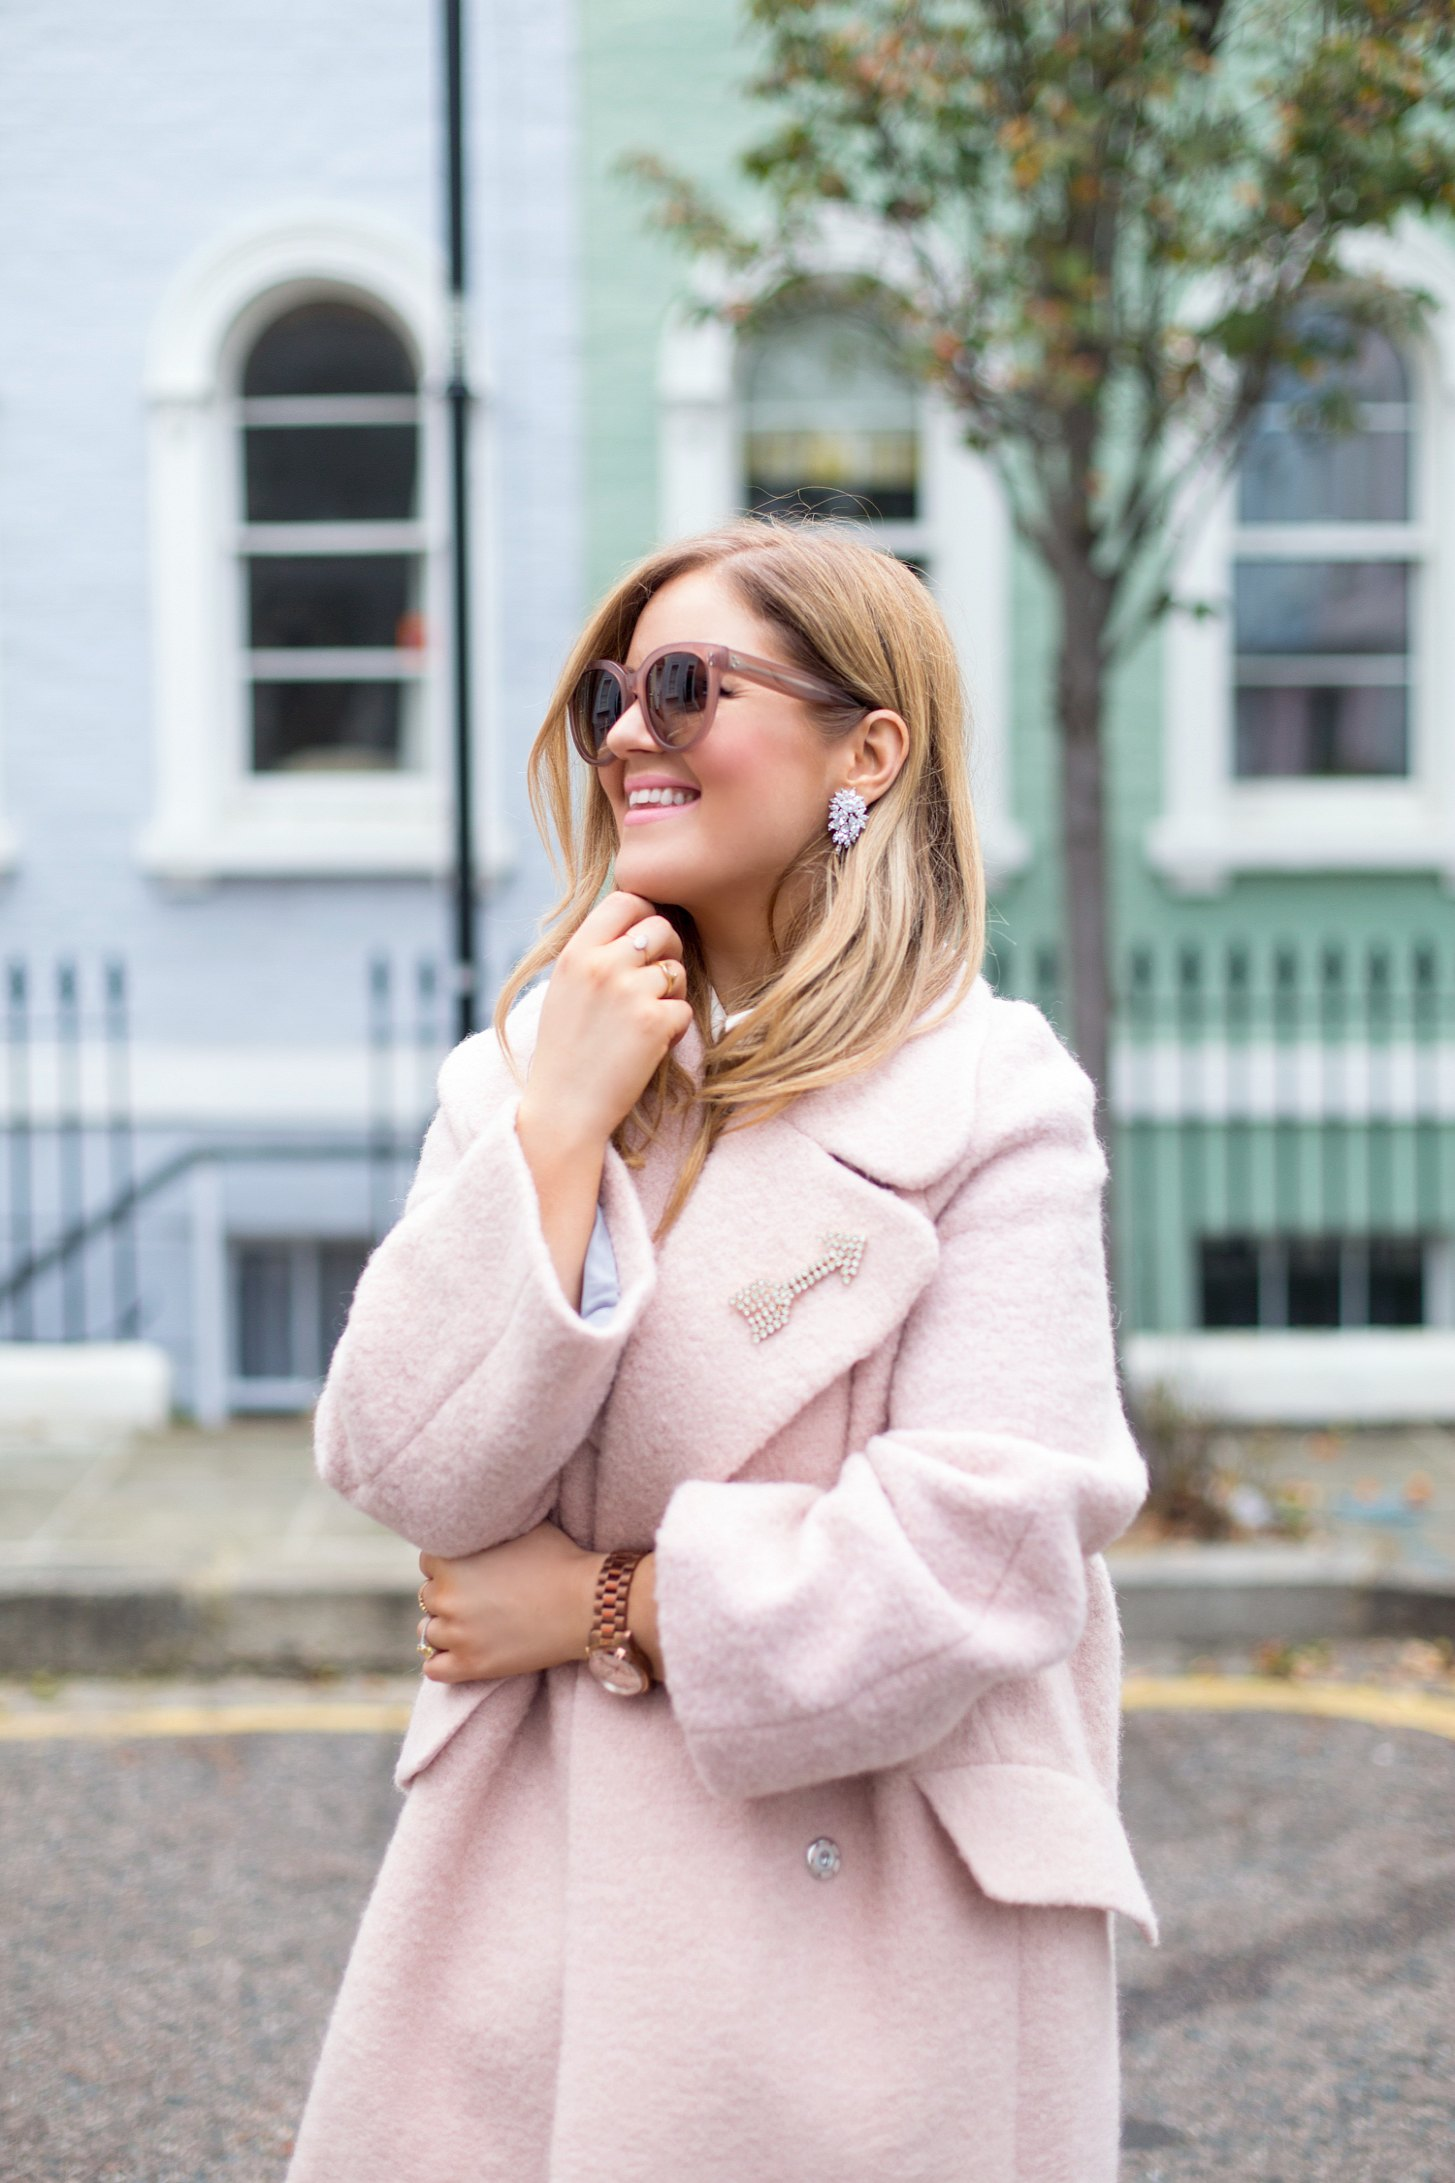 Pastel Streets and Pink Coats for Winter